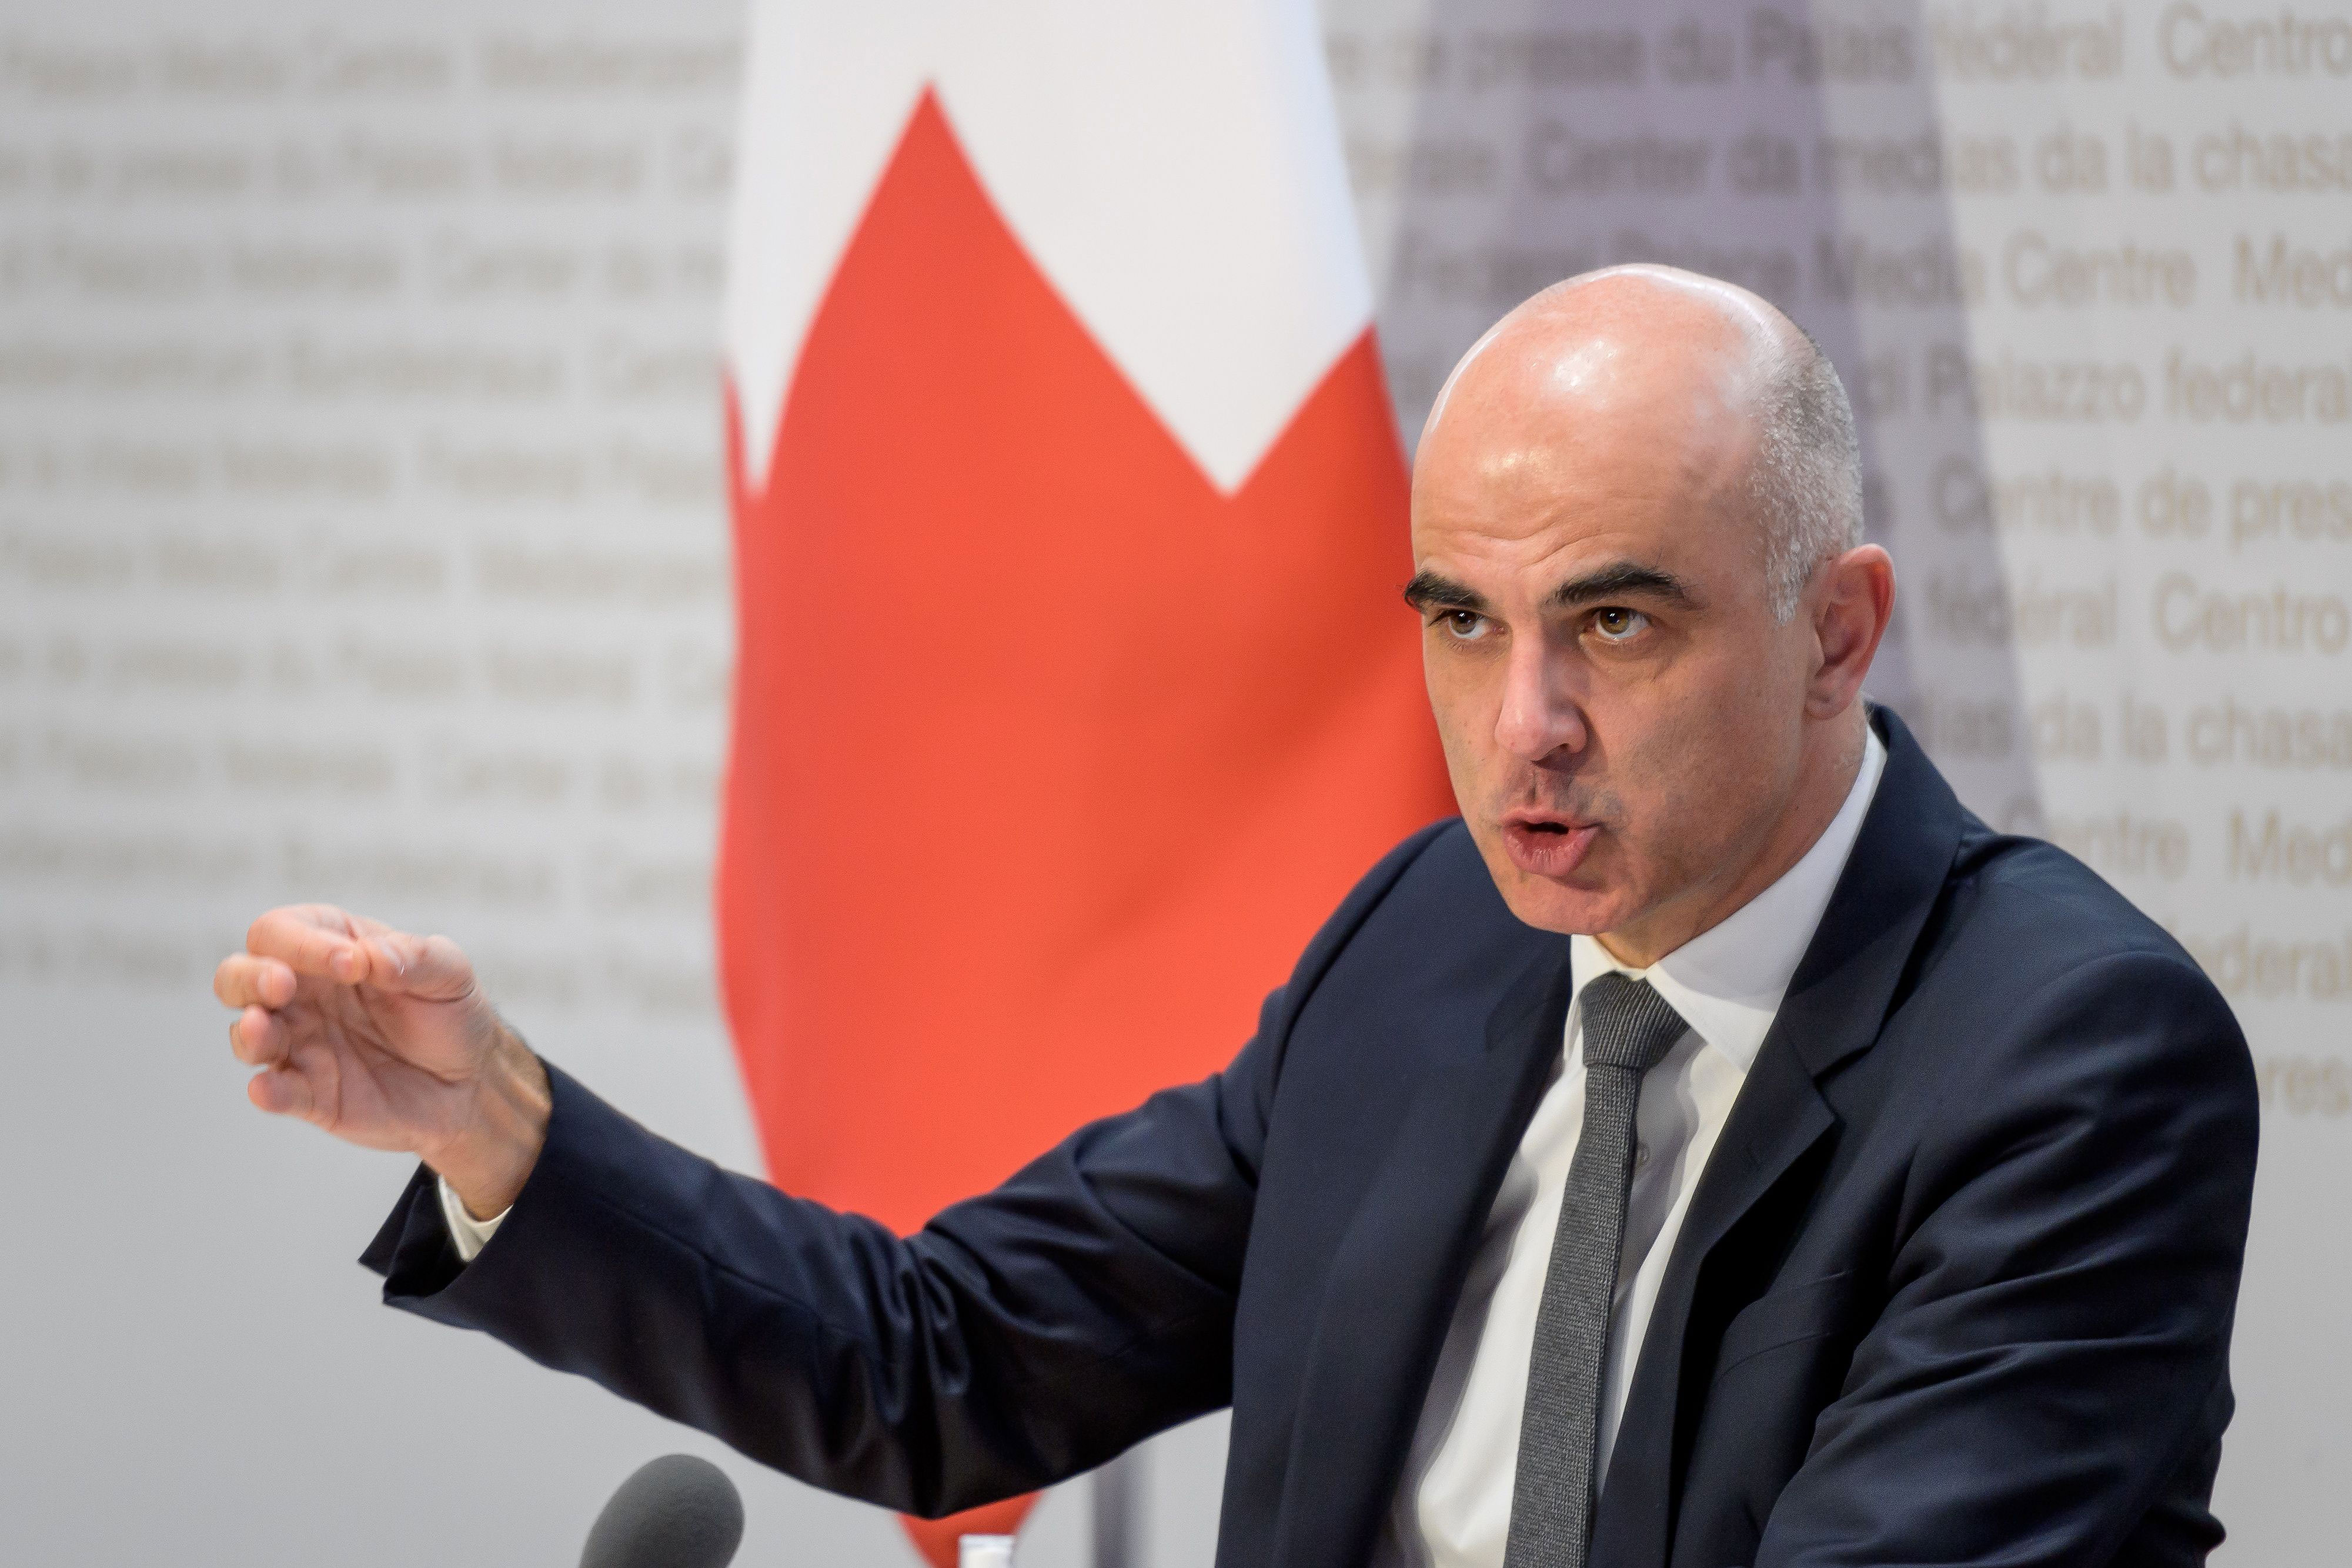 Federal CouncillorAlain Berset speaks at a press conference on January 6 in Bern, Switzerland.